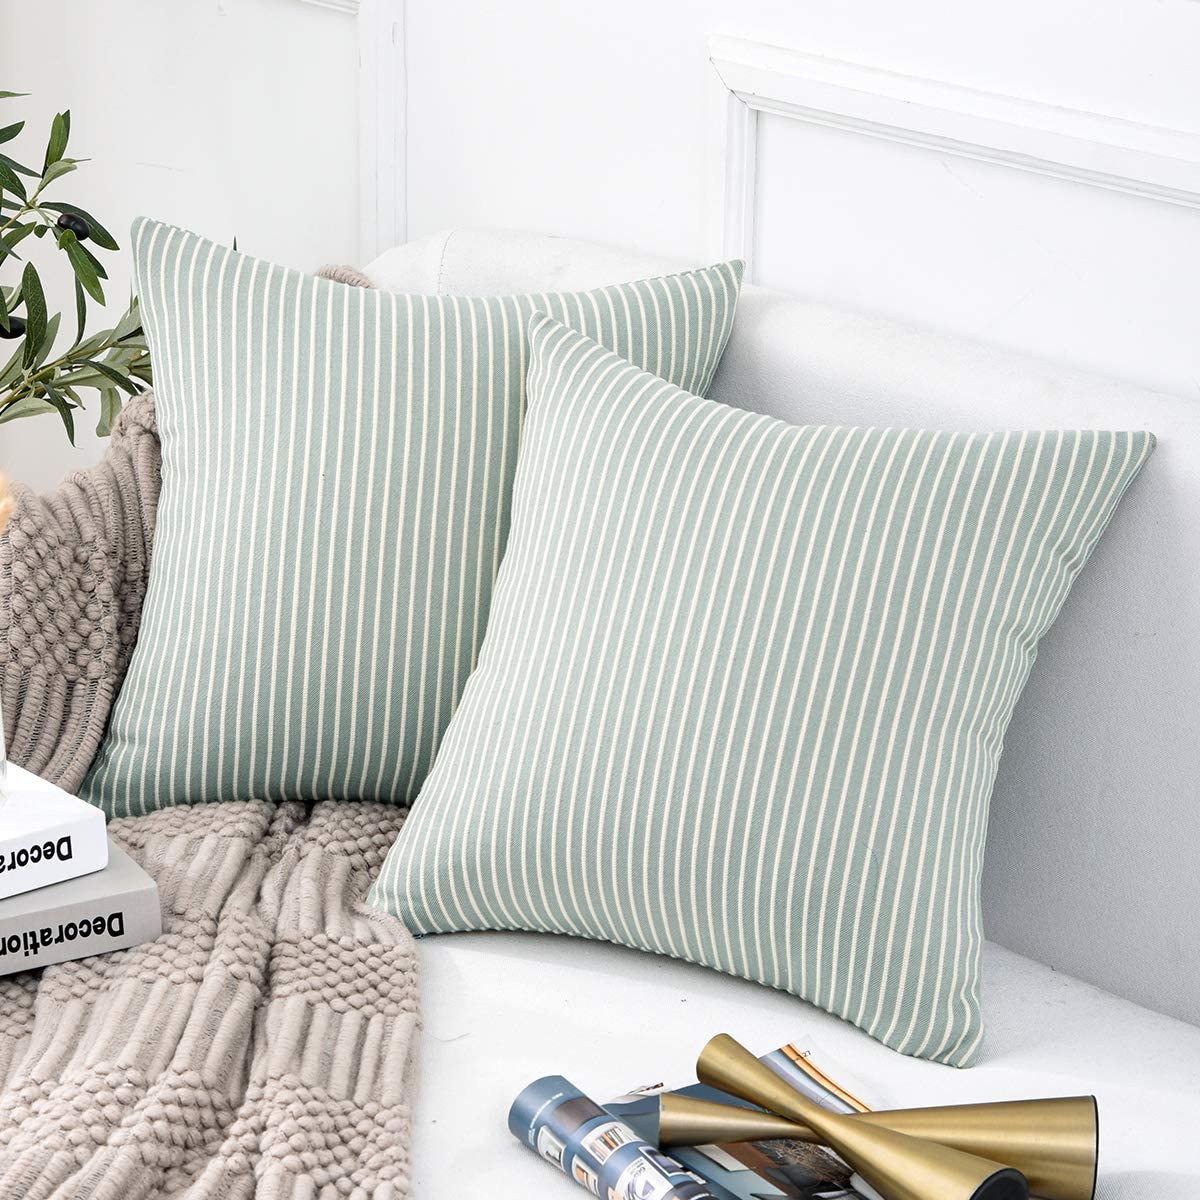 Jepeak Comfy Cotton Striped Throw Pillow Covers Cases, Pack of 2 Soft Decorative Square Ticking Cushion Covers for Sofa Couch (18 x 18 Inches, Light Teal)